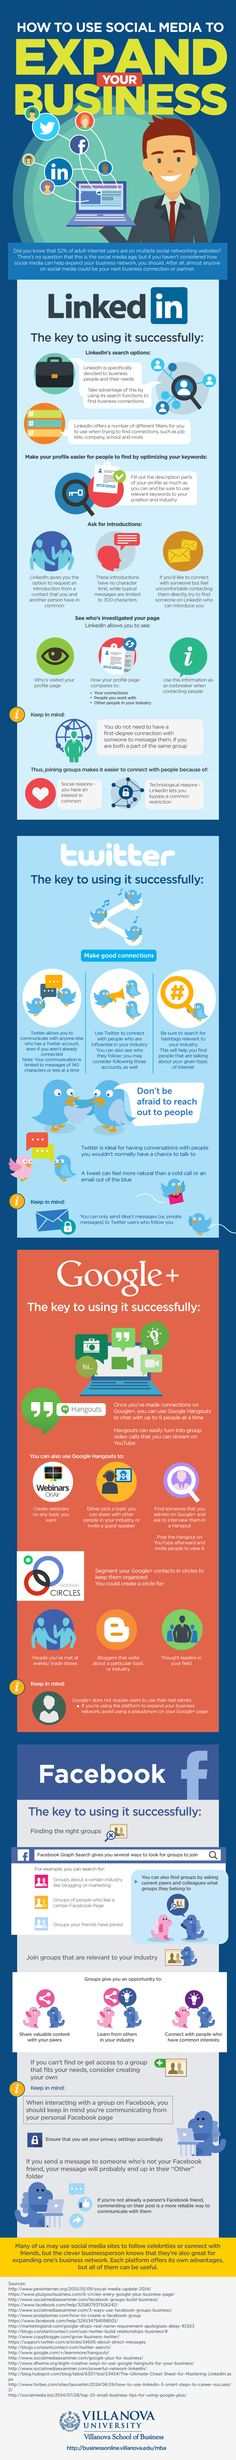 LinkedIn, Twitter, GooglePlus, Facebook: How to Use Social Media to Expand Your Small Business - #infographic While check out #knackmap. To help you achieve your social media goal, all in one place. Learn more at knackmap.com